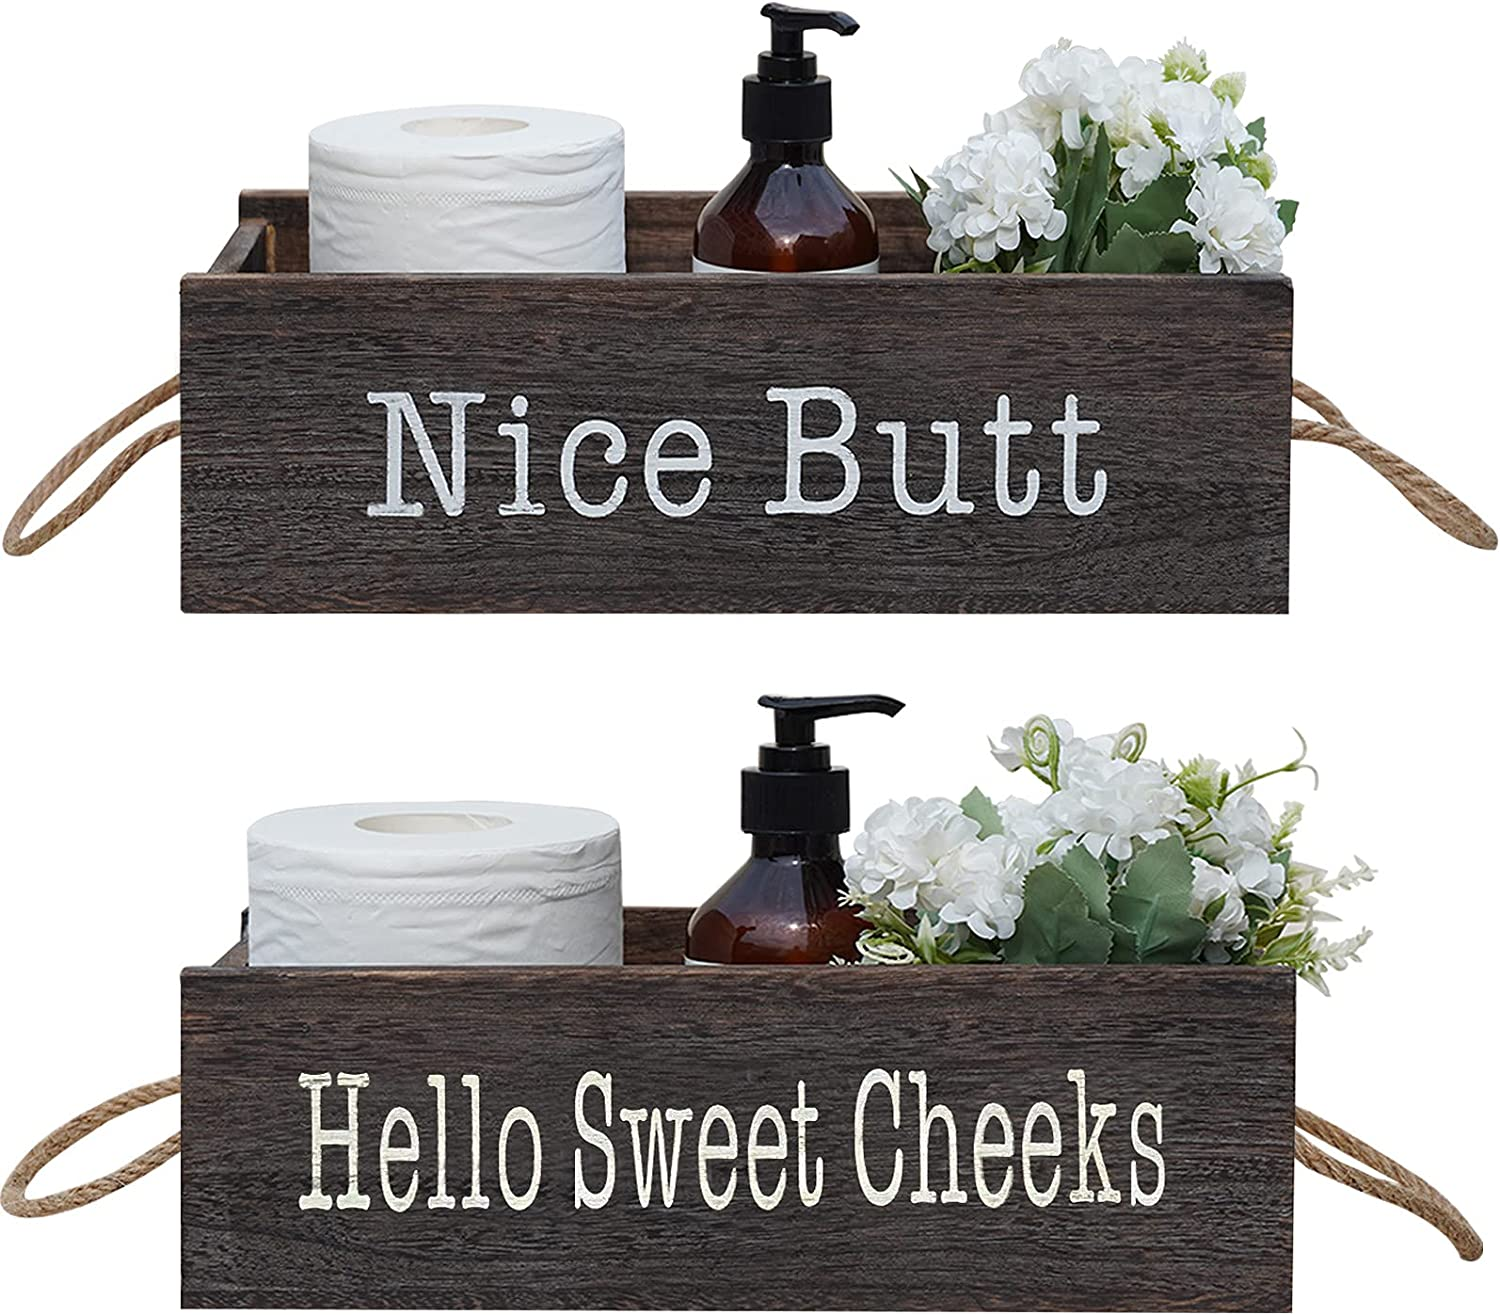 VICKERT Nice Butt Bathroom Decor Box, 2 Sides - Funny Gift, Funny Toilet Paper Holder Perfect for Farmhouse Bathroom Decor, Toilet Paper Storage, Diaper Organizer